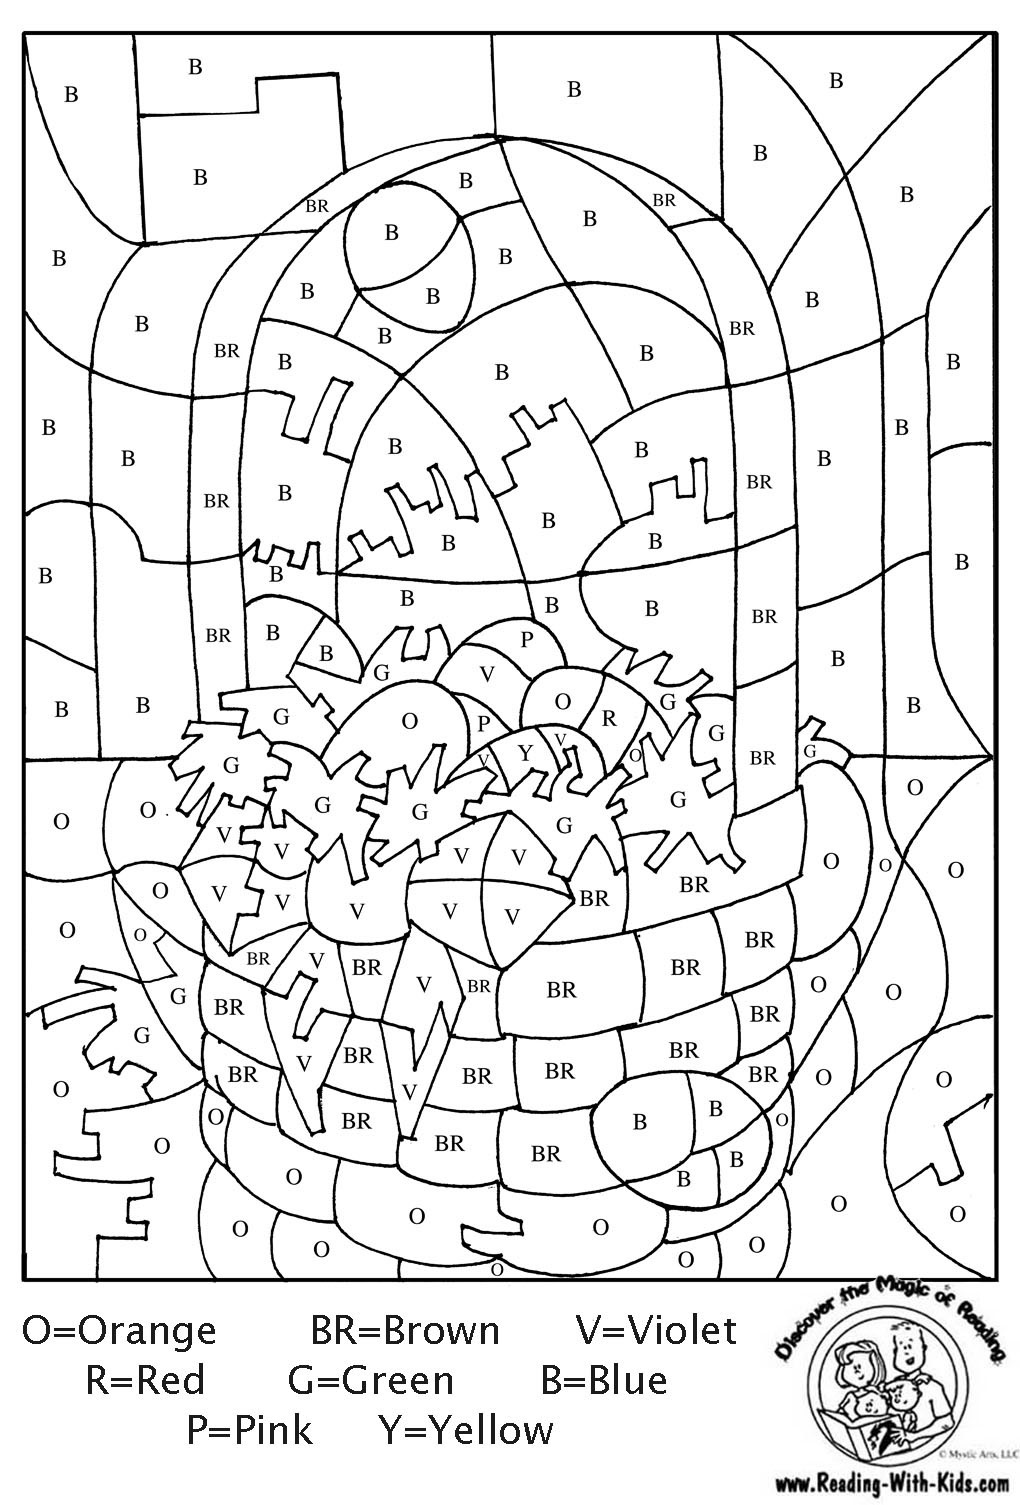 colouring by numbers worksheets 7 best images of maze worksheets for teens christmas colouring by numbers worksheets